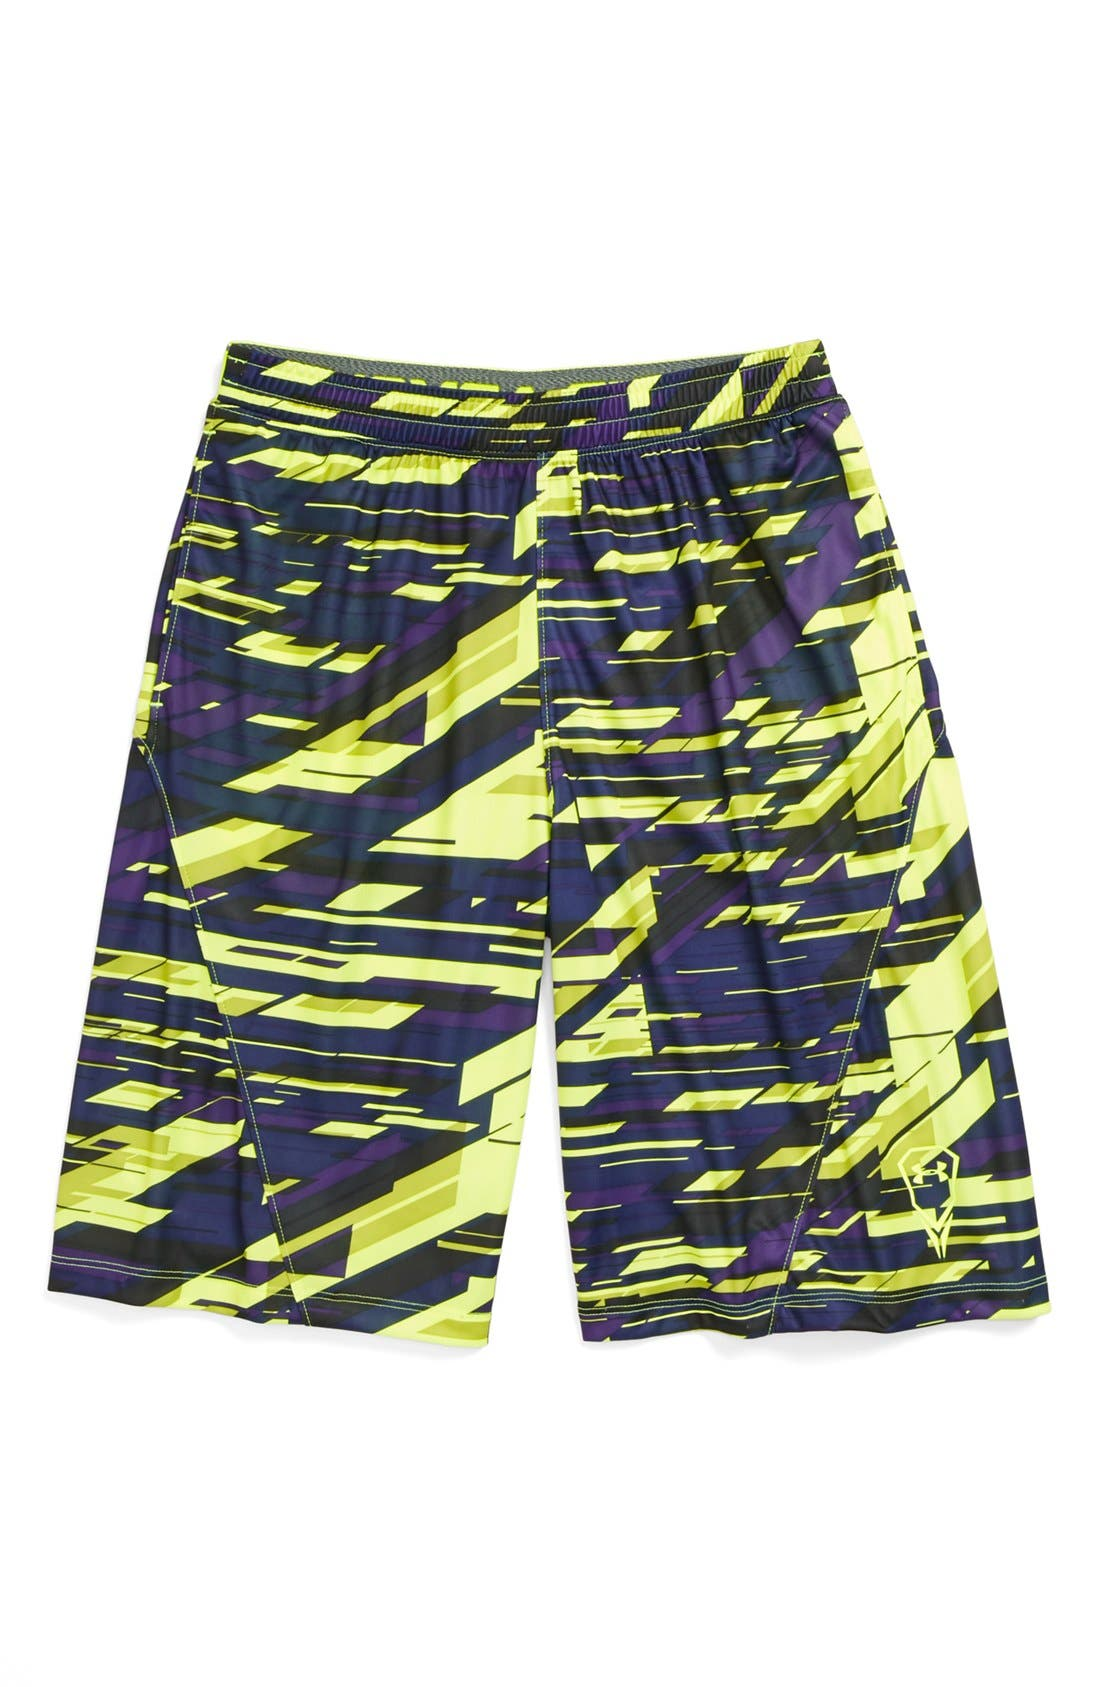 Alternate Image 1 Selected - Under Armour 'Upton O'Good' Shorts (Big Boys)